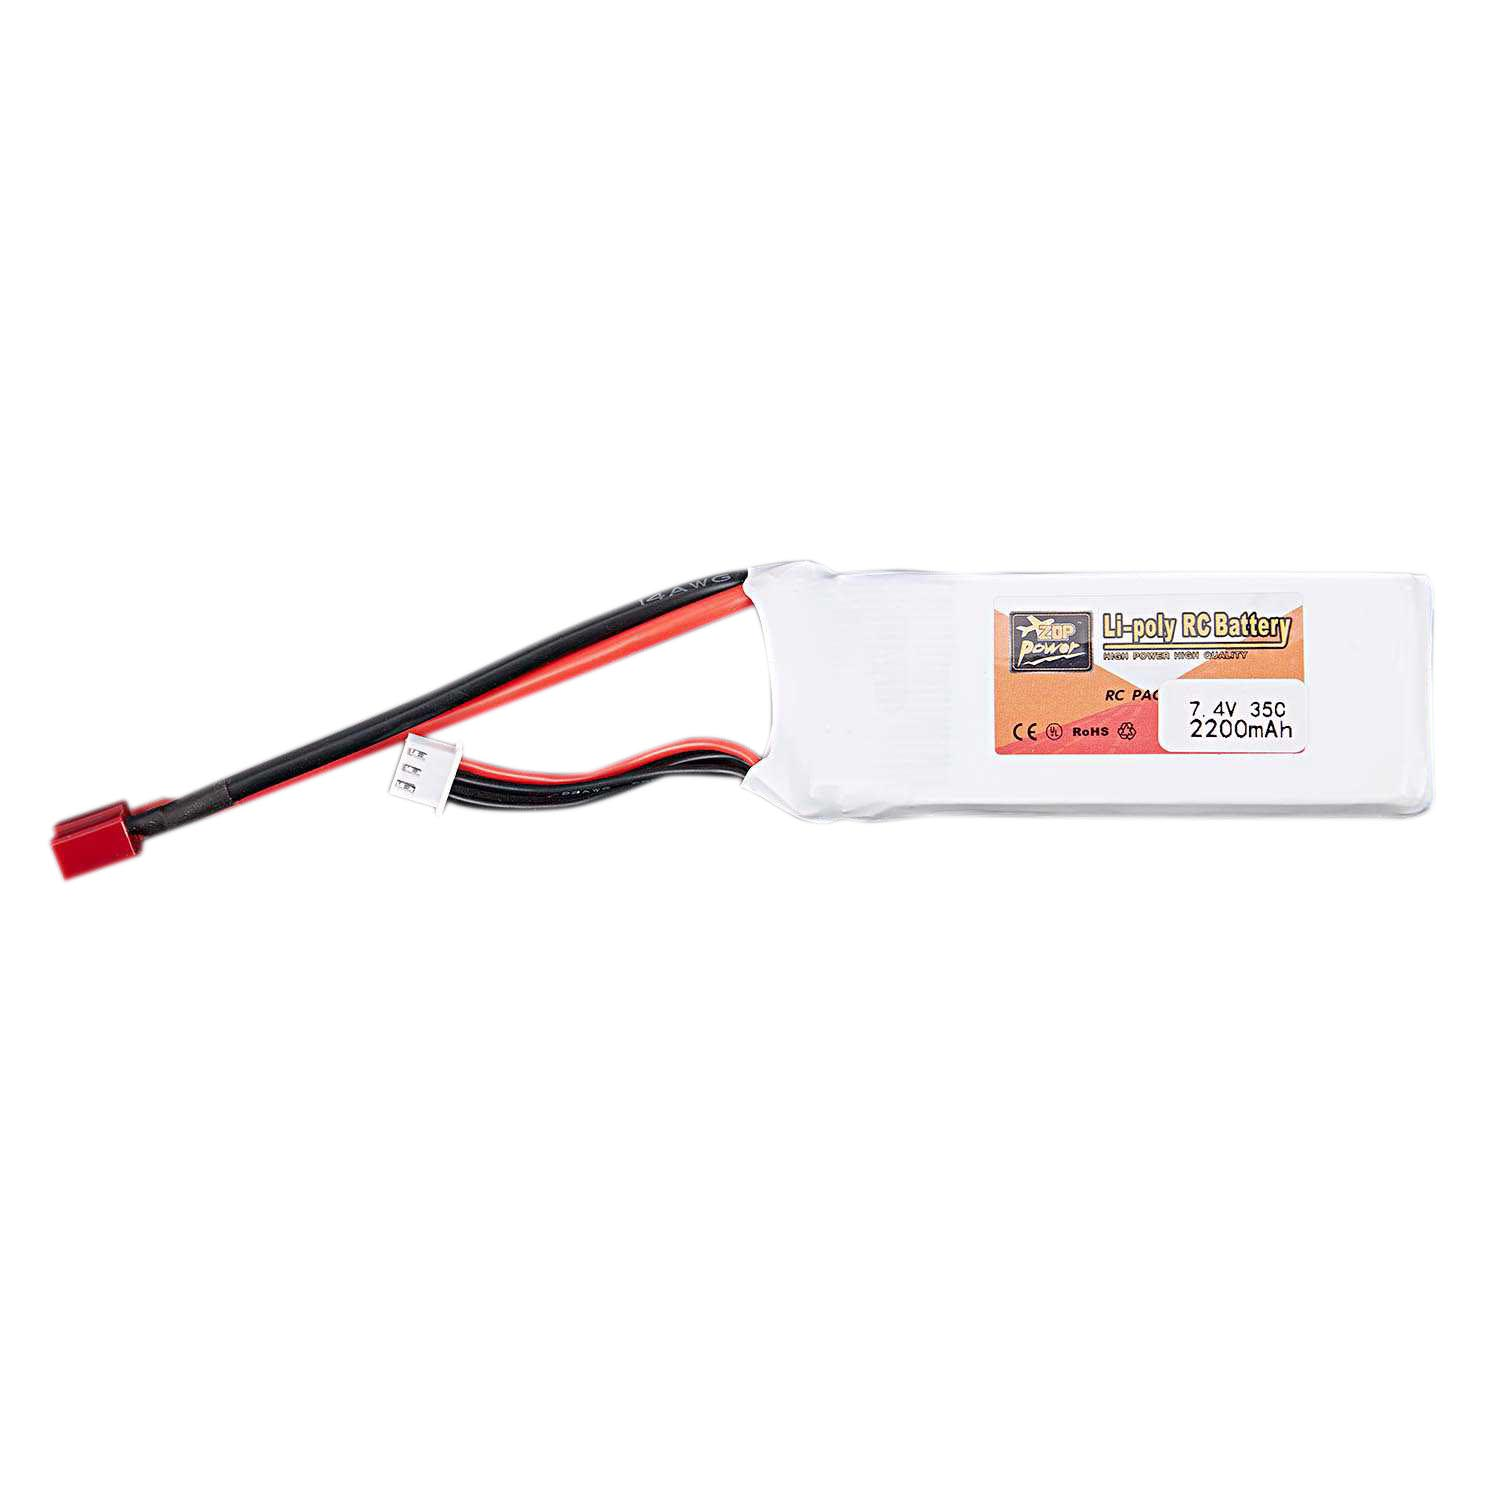 ZOP POWER 7.4V Zop Power 7.4V 2200Mah 2S 35C Lipo Battery T Plug for RC Plane car toy RC boat accessories for remote control toy image